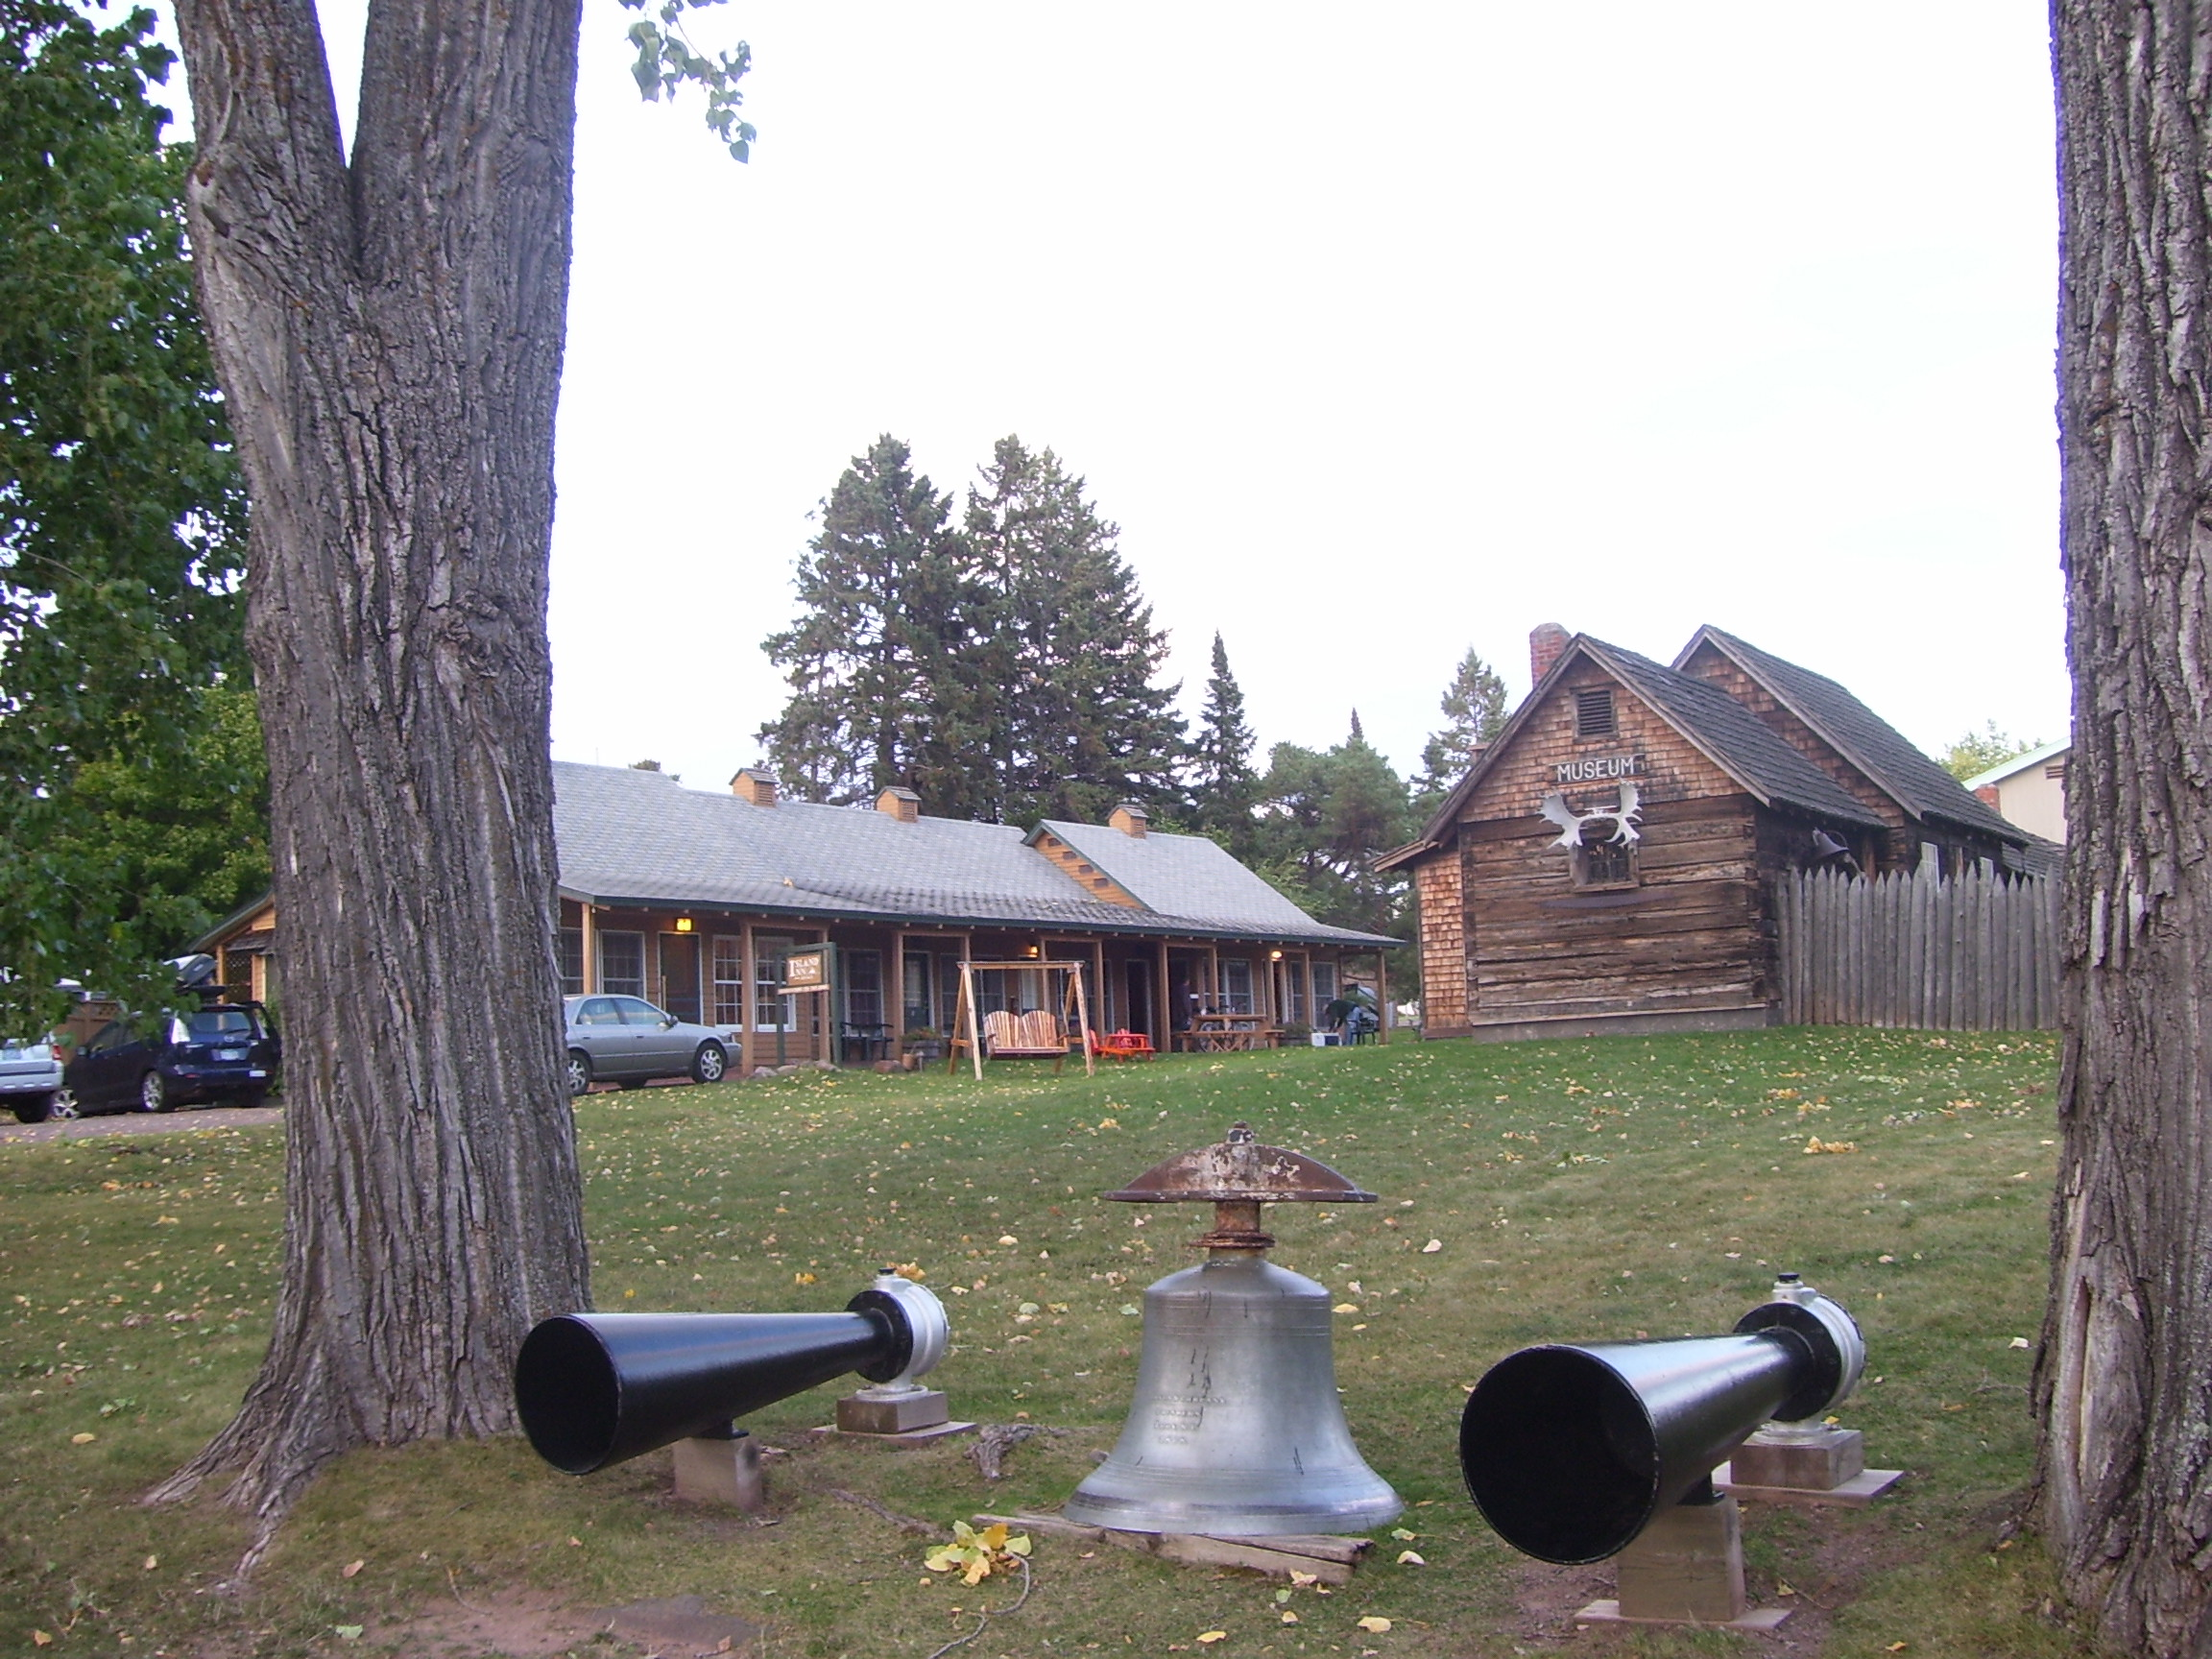 The fog horns and bell